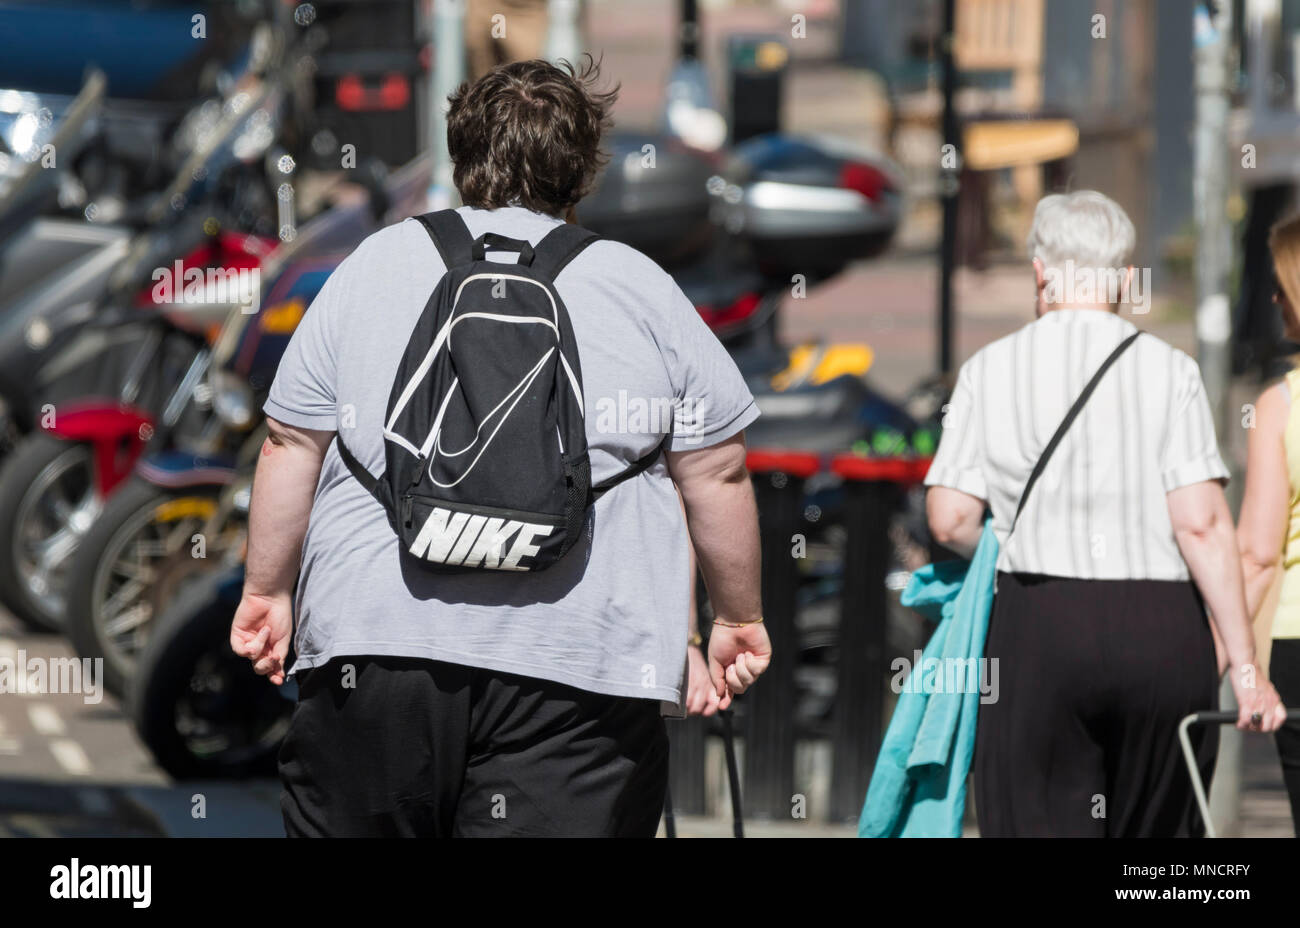 Obese man from behind walking away in the UK. Overweight concept. - Stock Image